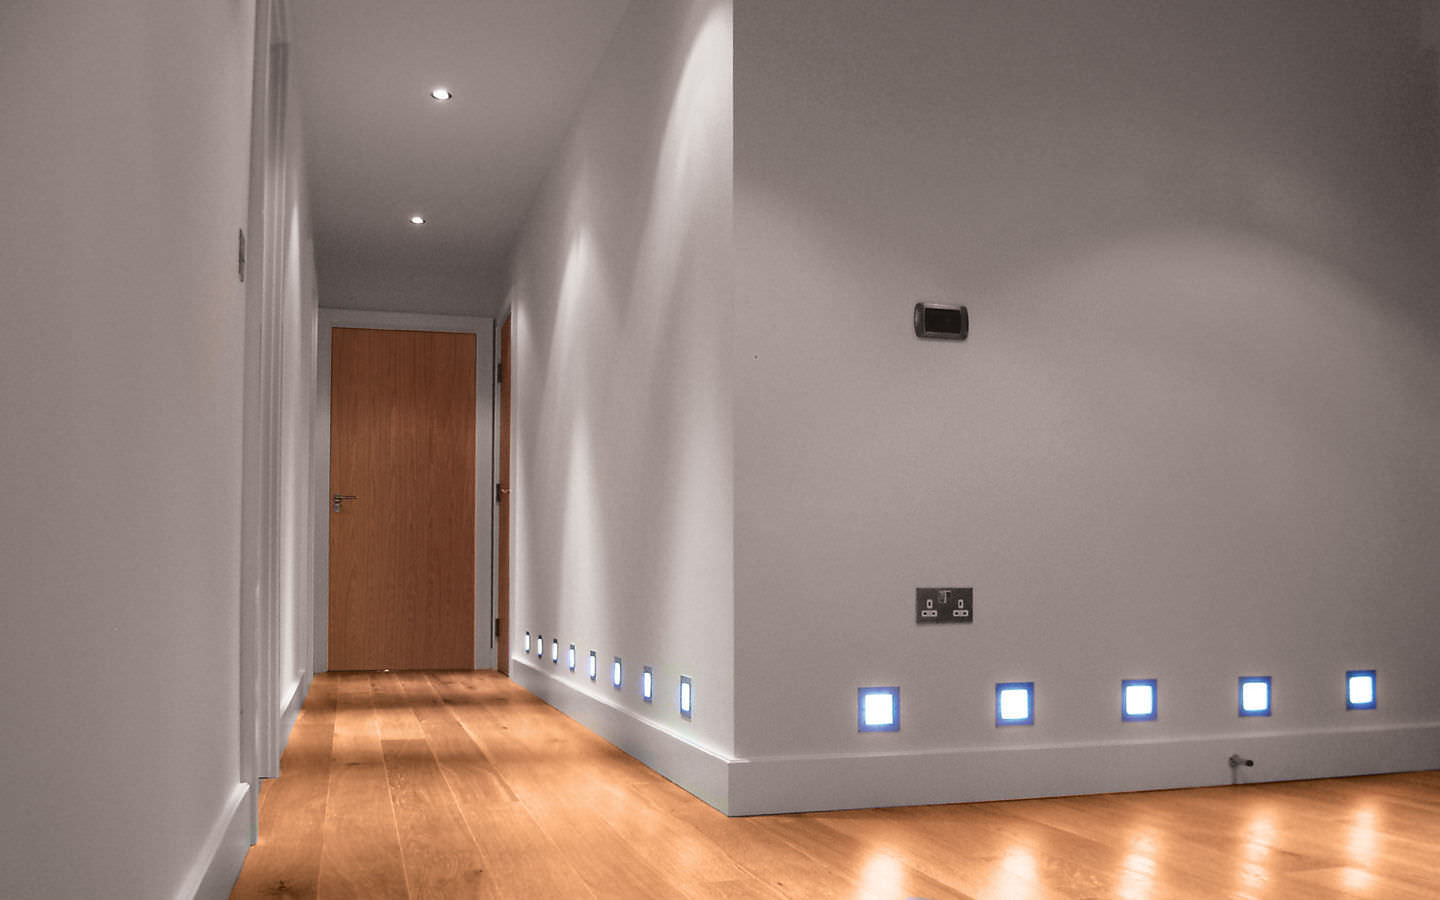 Recessed lighting installation cost guide in 2018 contractorculture aloadofball Images